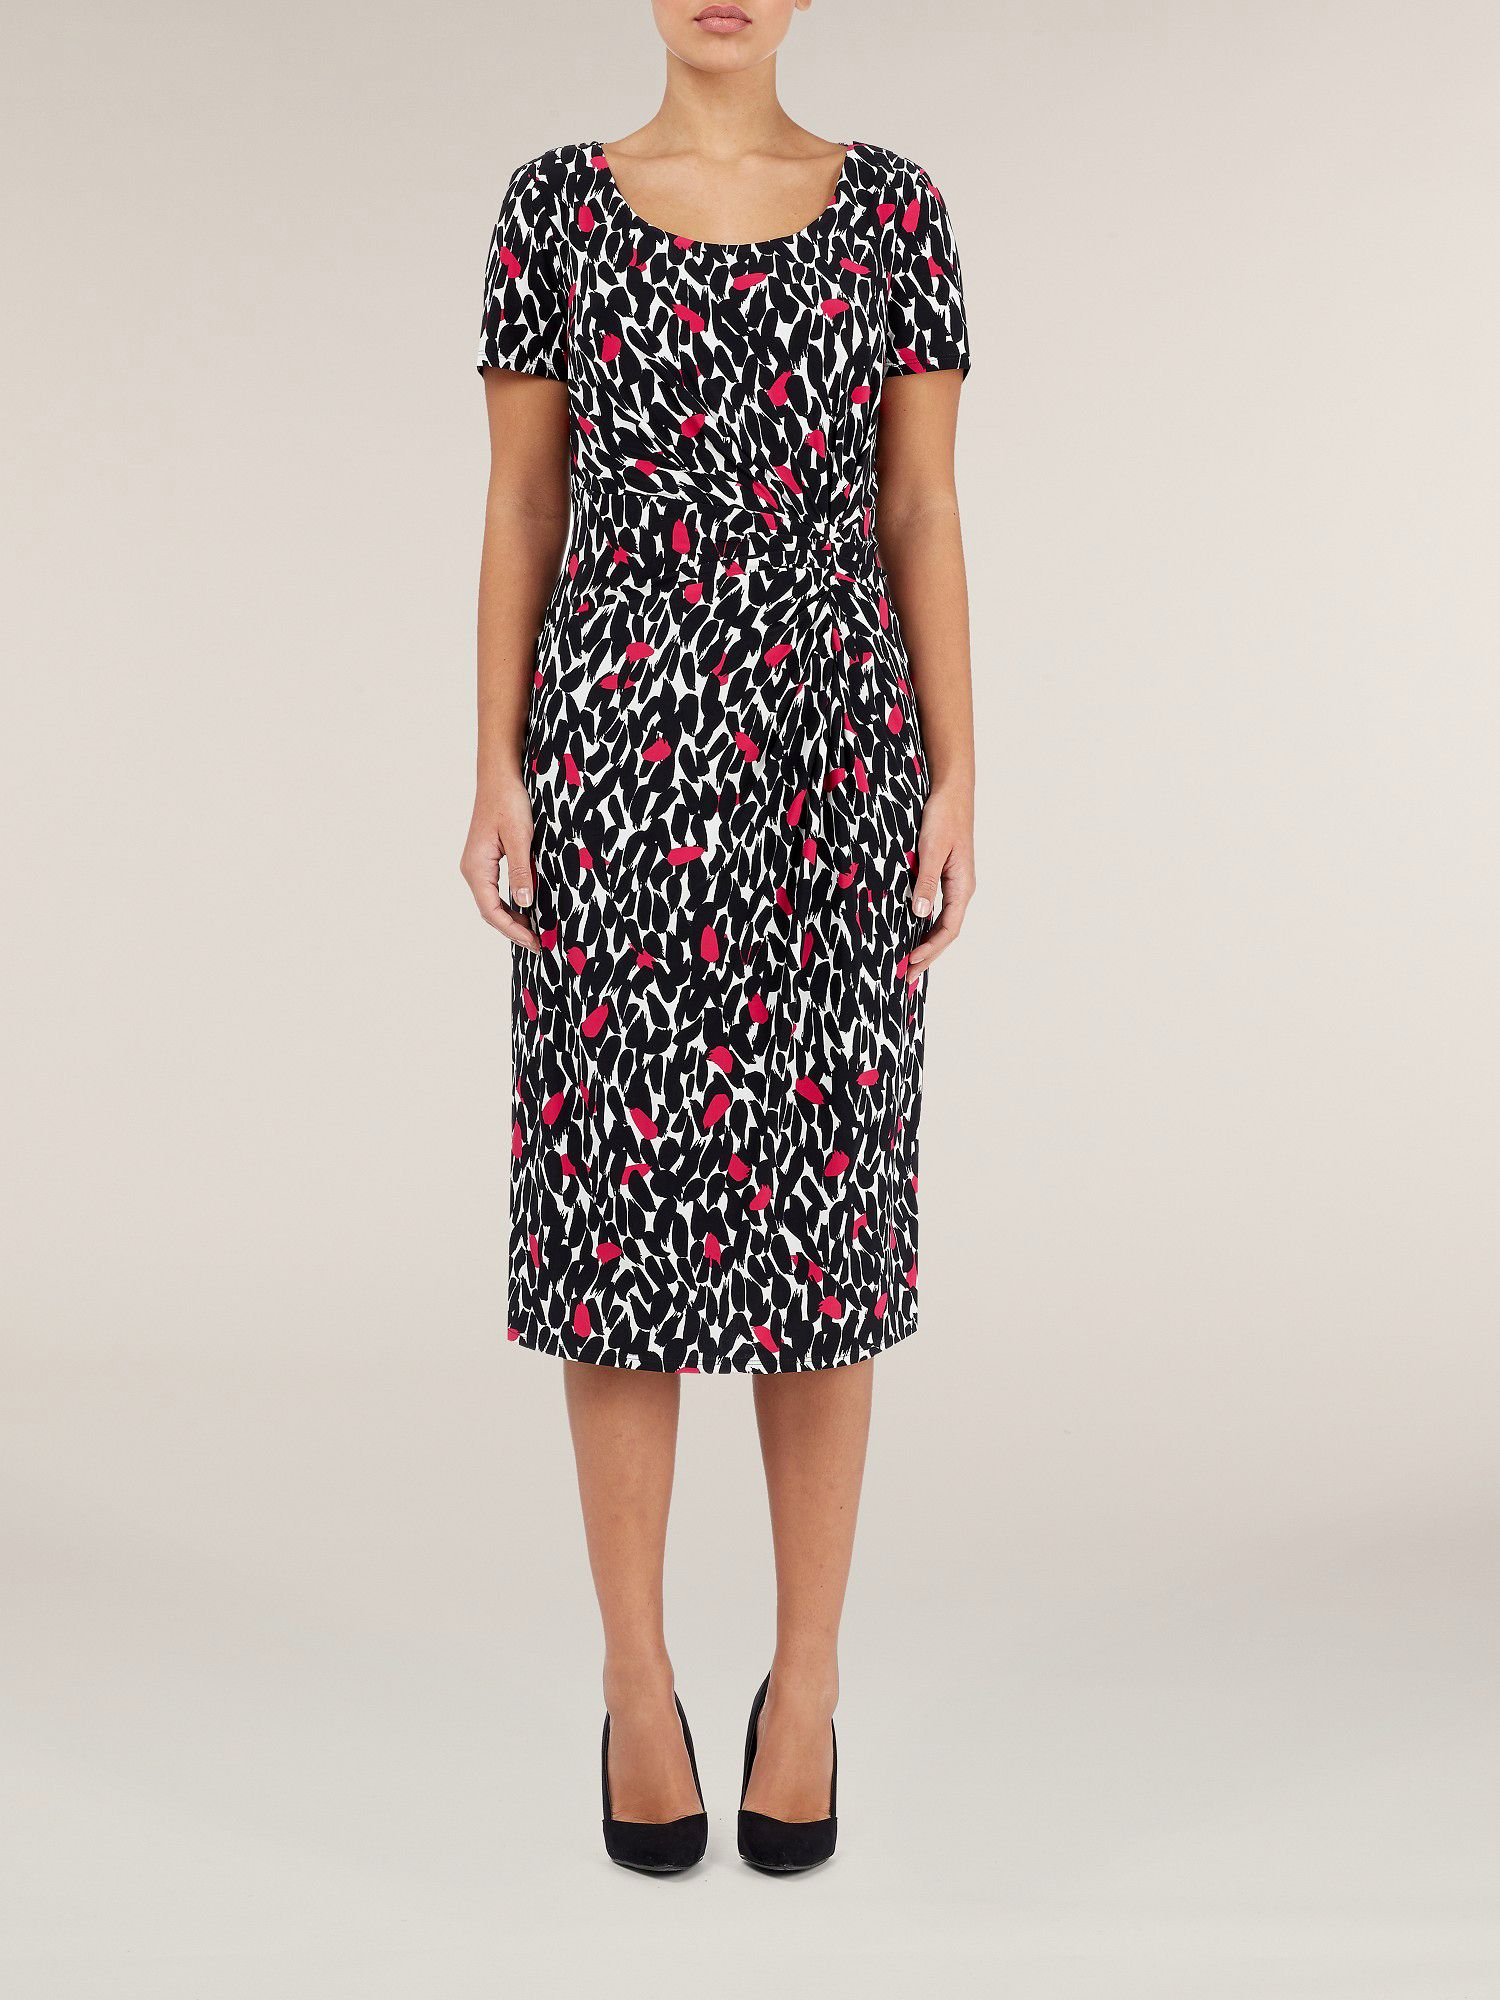 Short sleeved peony leaf print dress